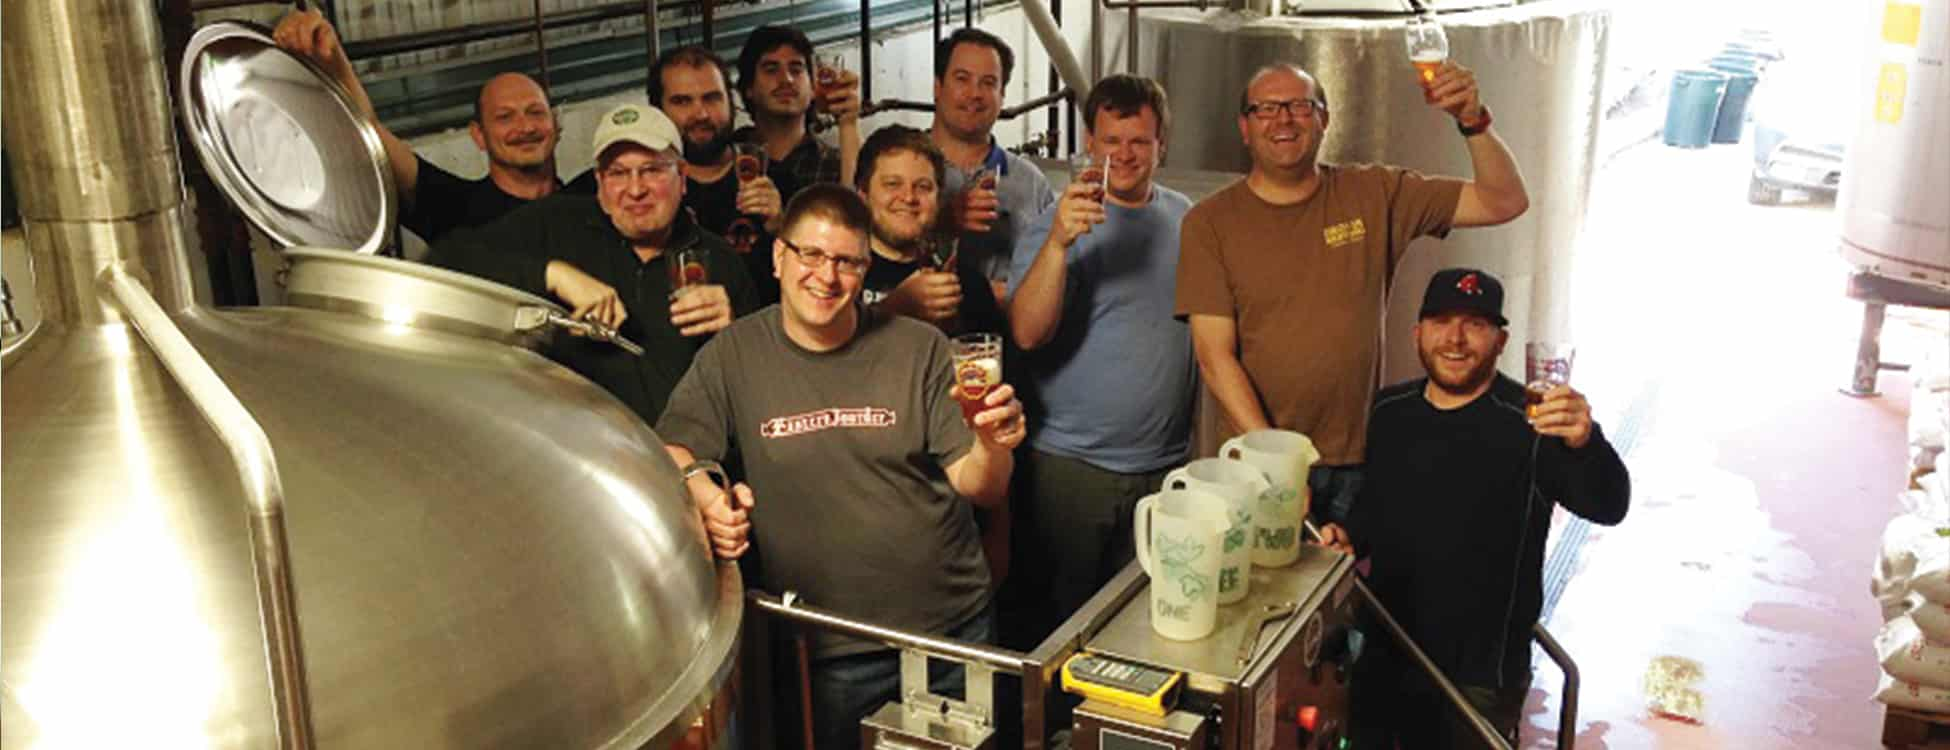 beer making class, students smile